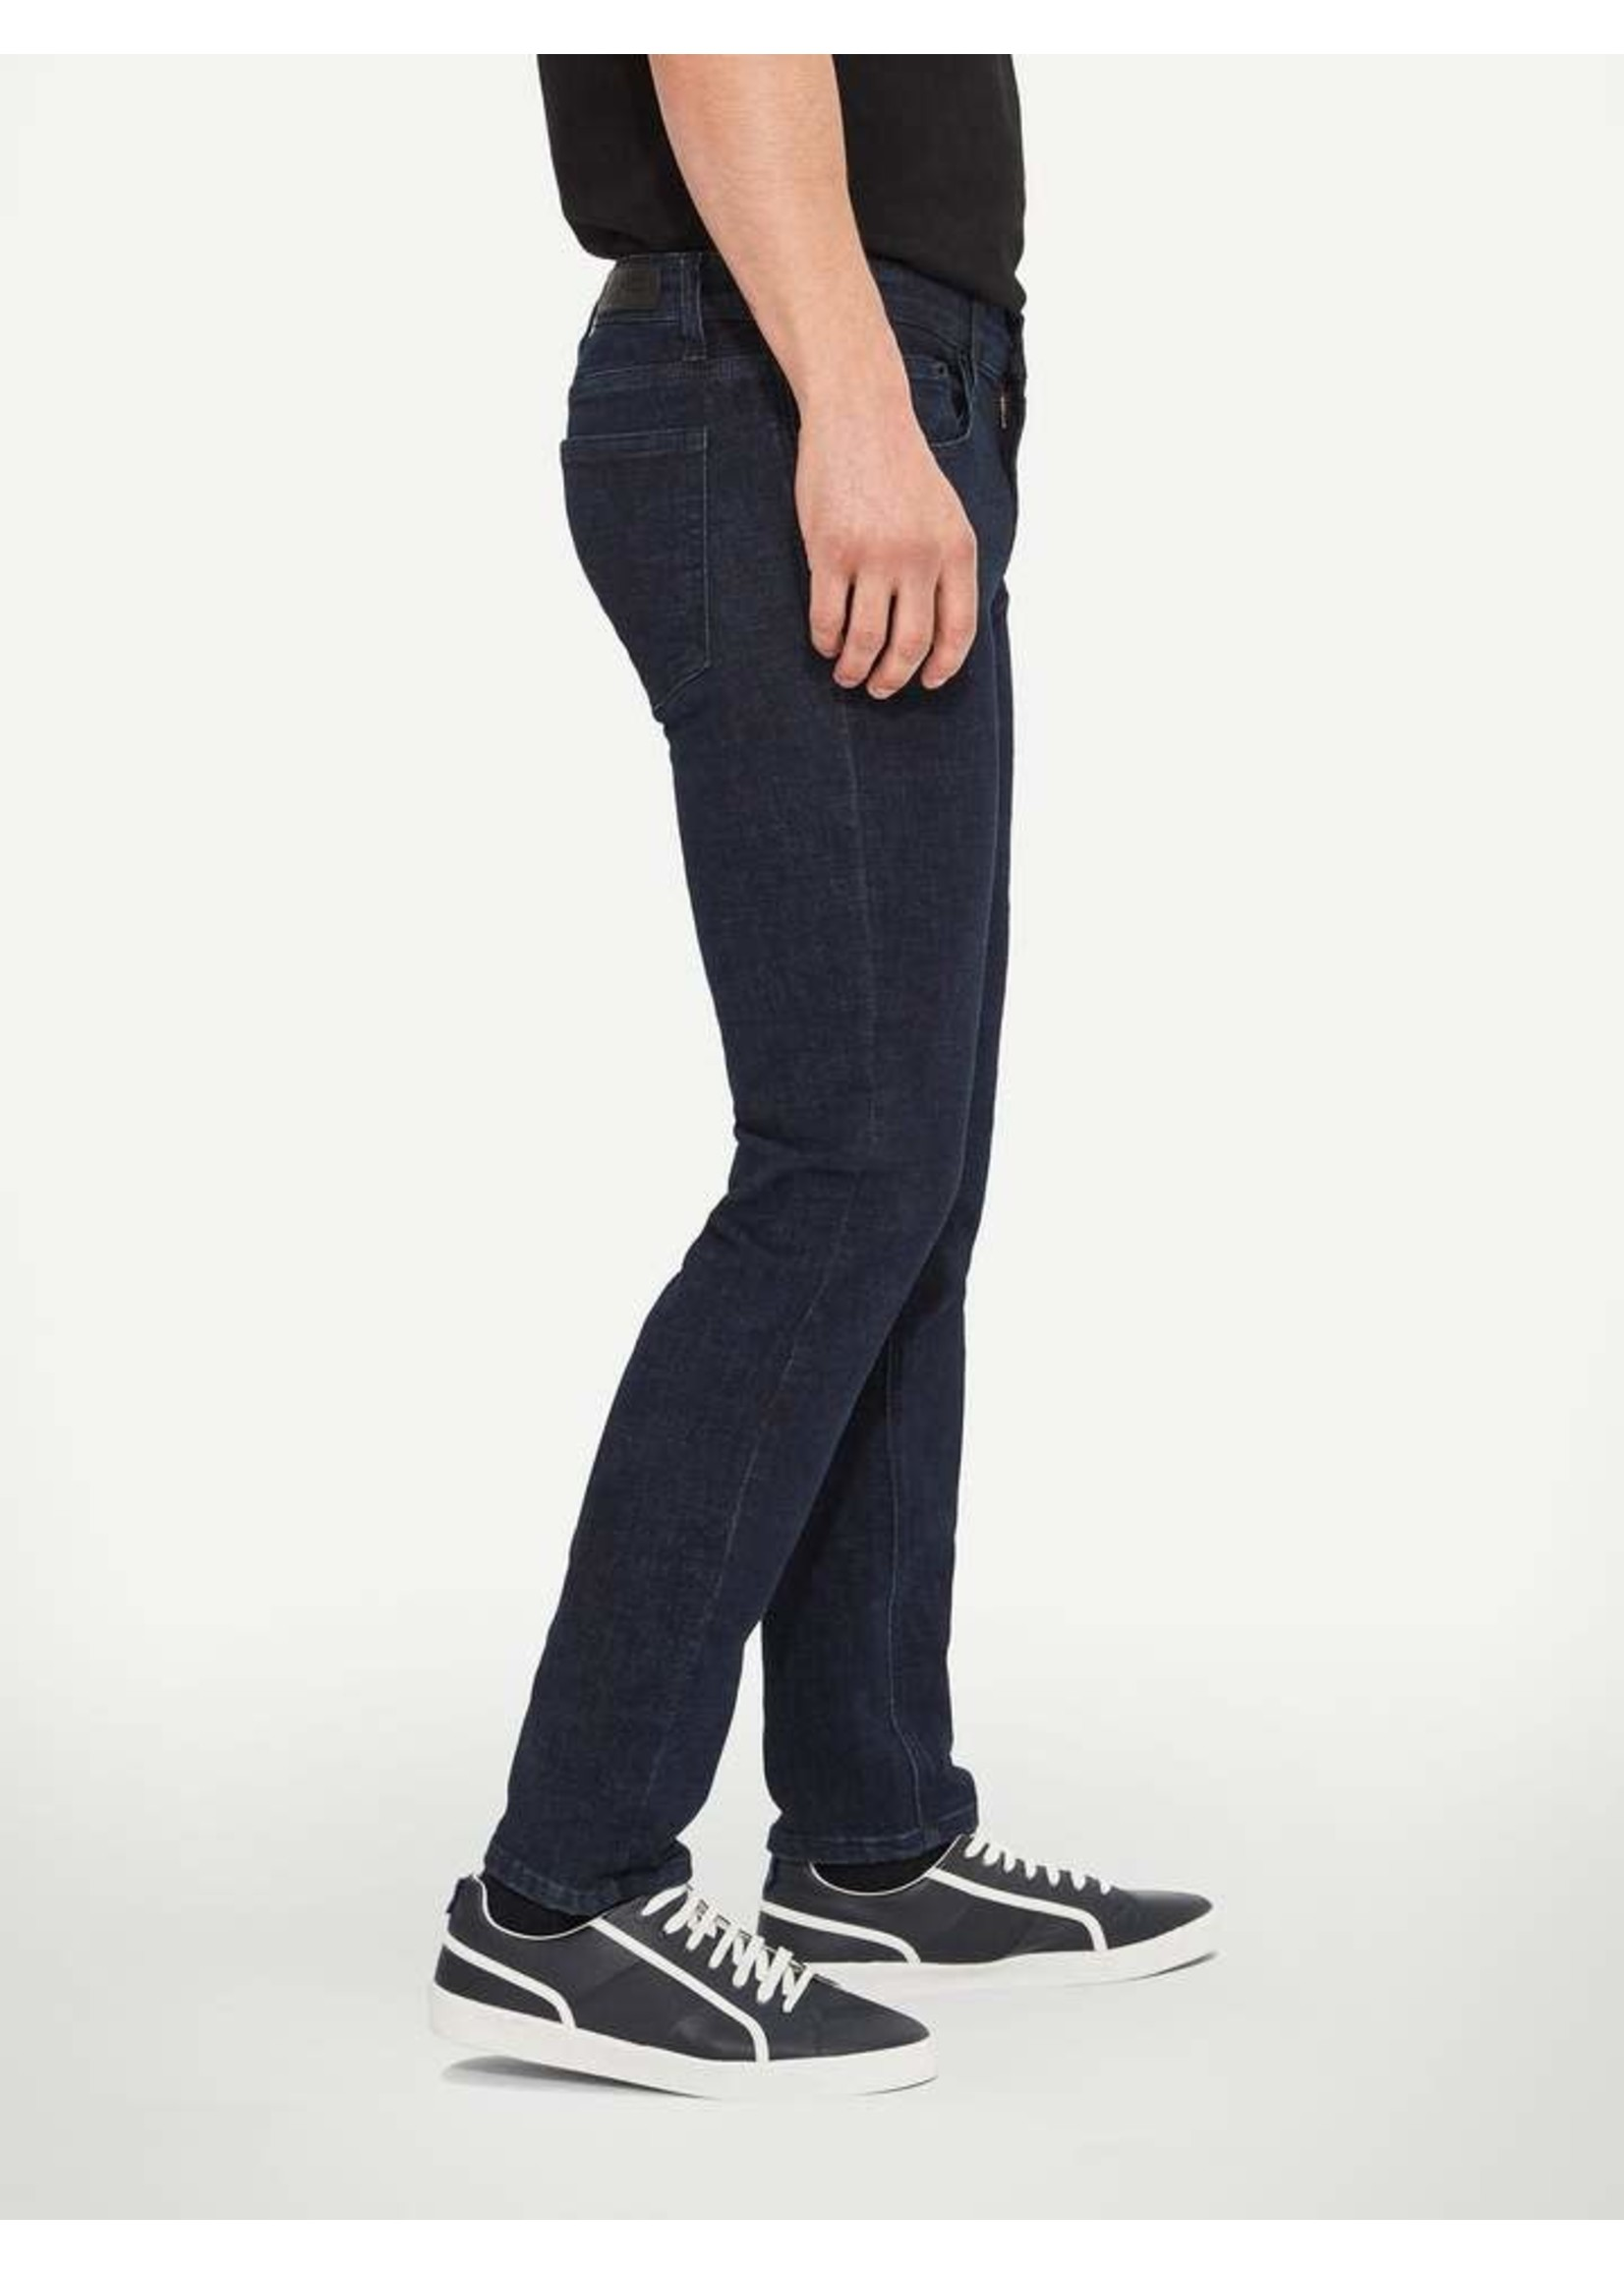 """Lois Jeans Canada The """"New Star 7142-00"""" by Lois Jeans"""